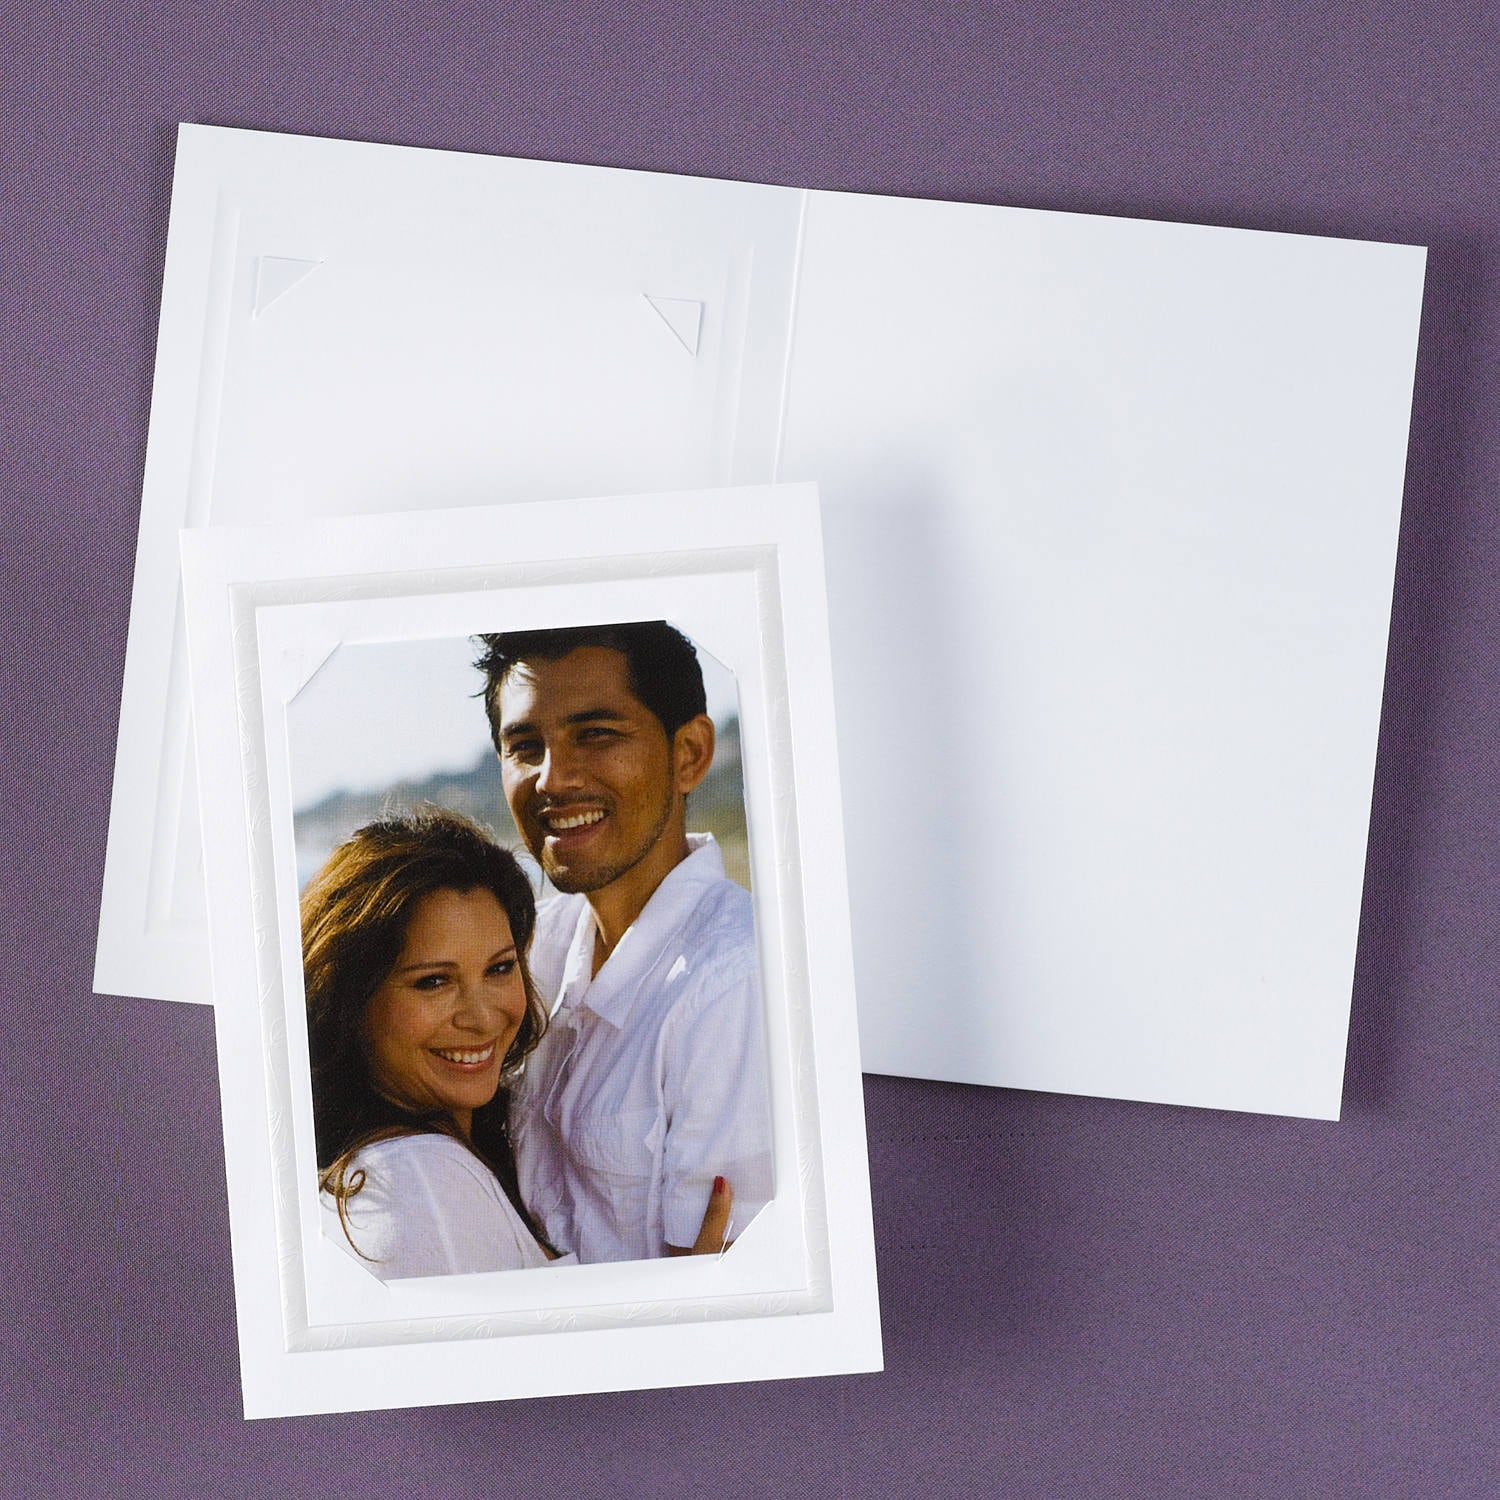 Blank Die Cut Cards Create a Photo Thank You Card Blank Cards – Wedding Thank You Cards with Photo Insert